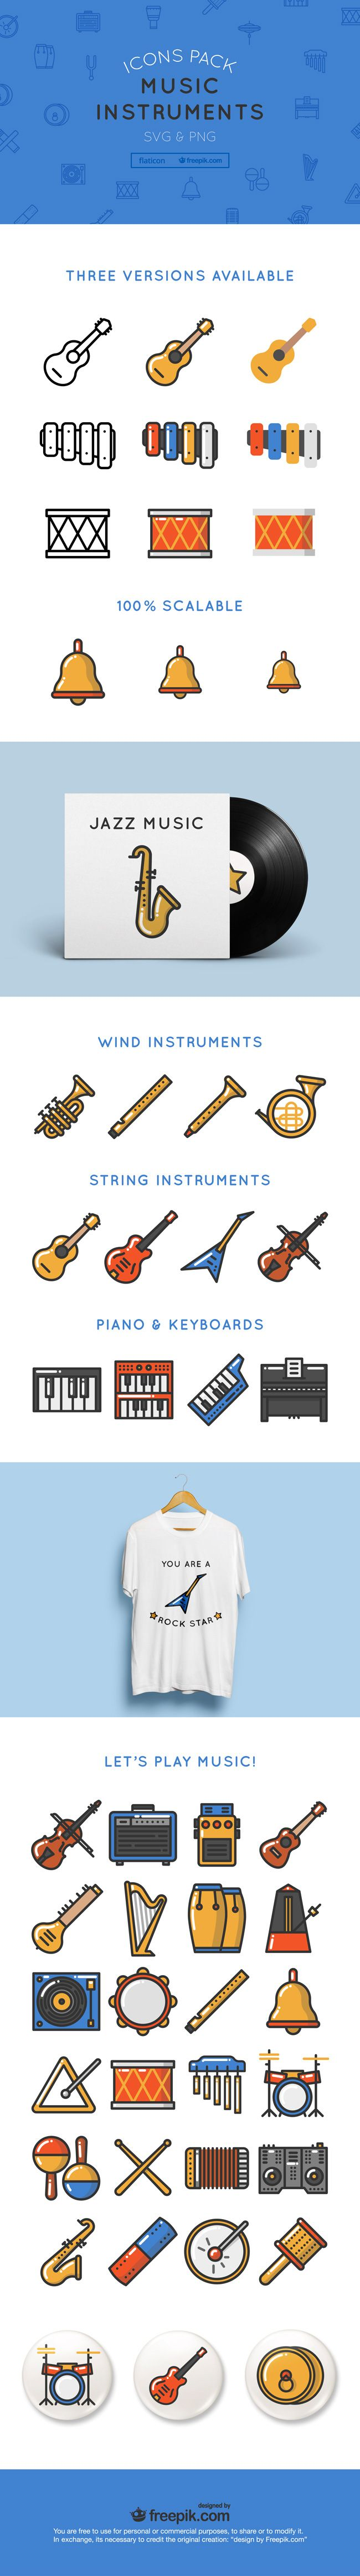 Free Download : 50 Music Instrument Icons (linear, flat, colored)